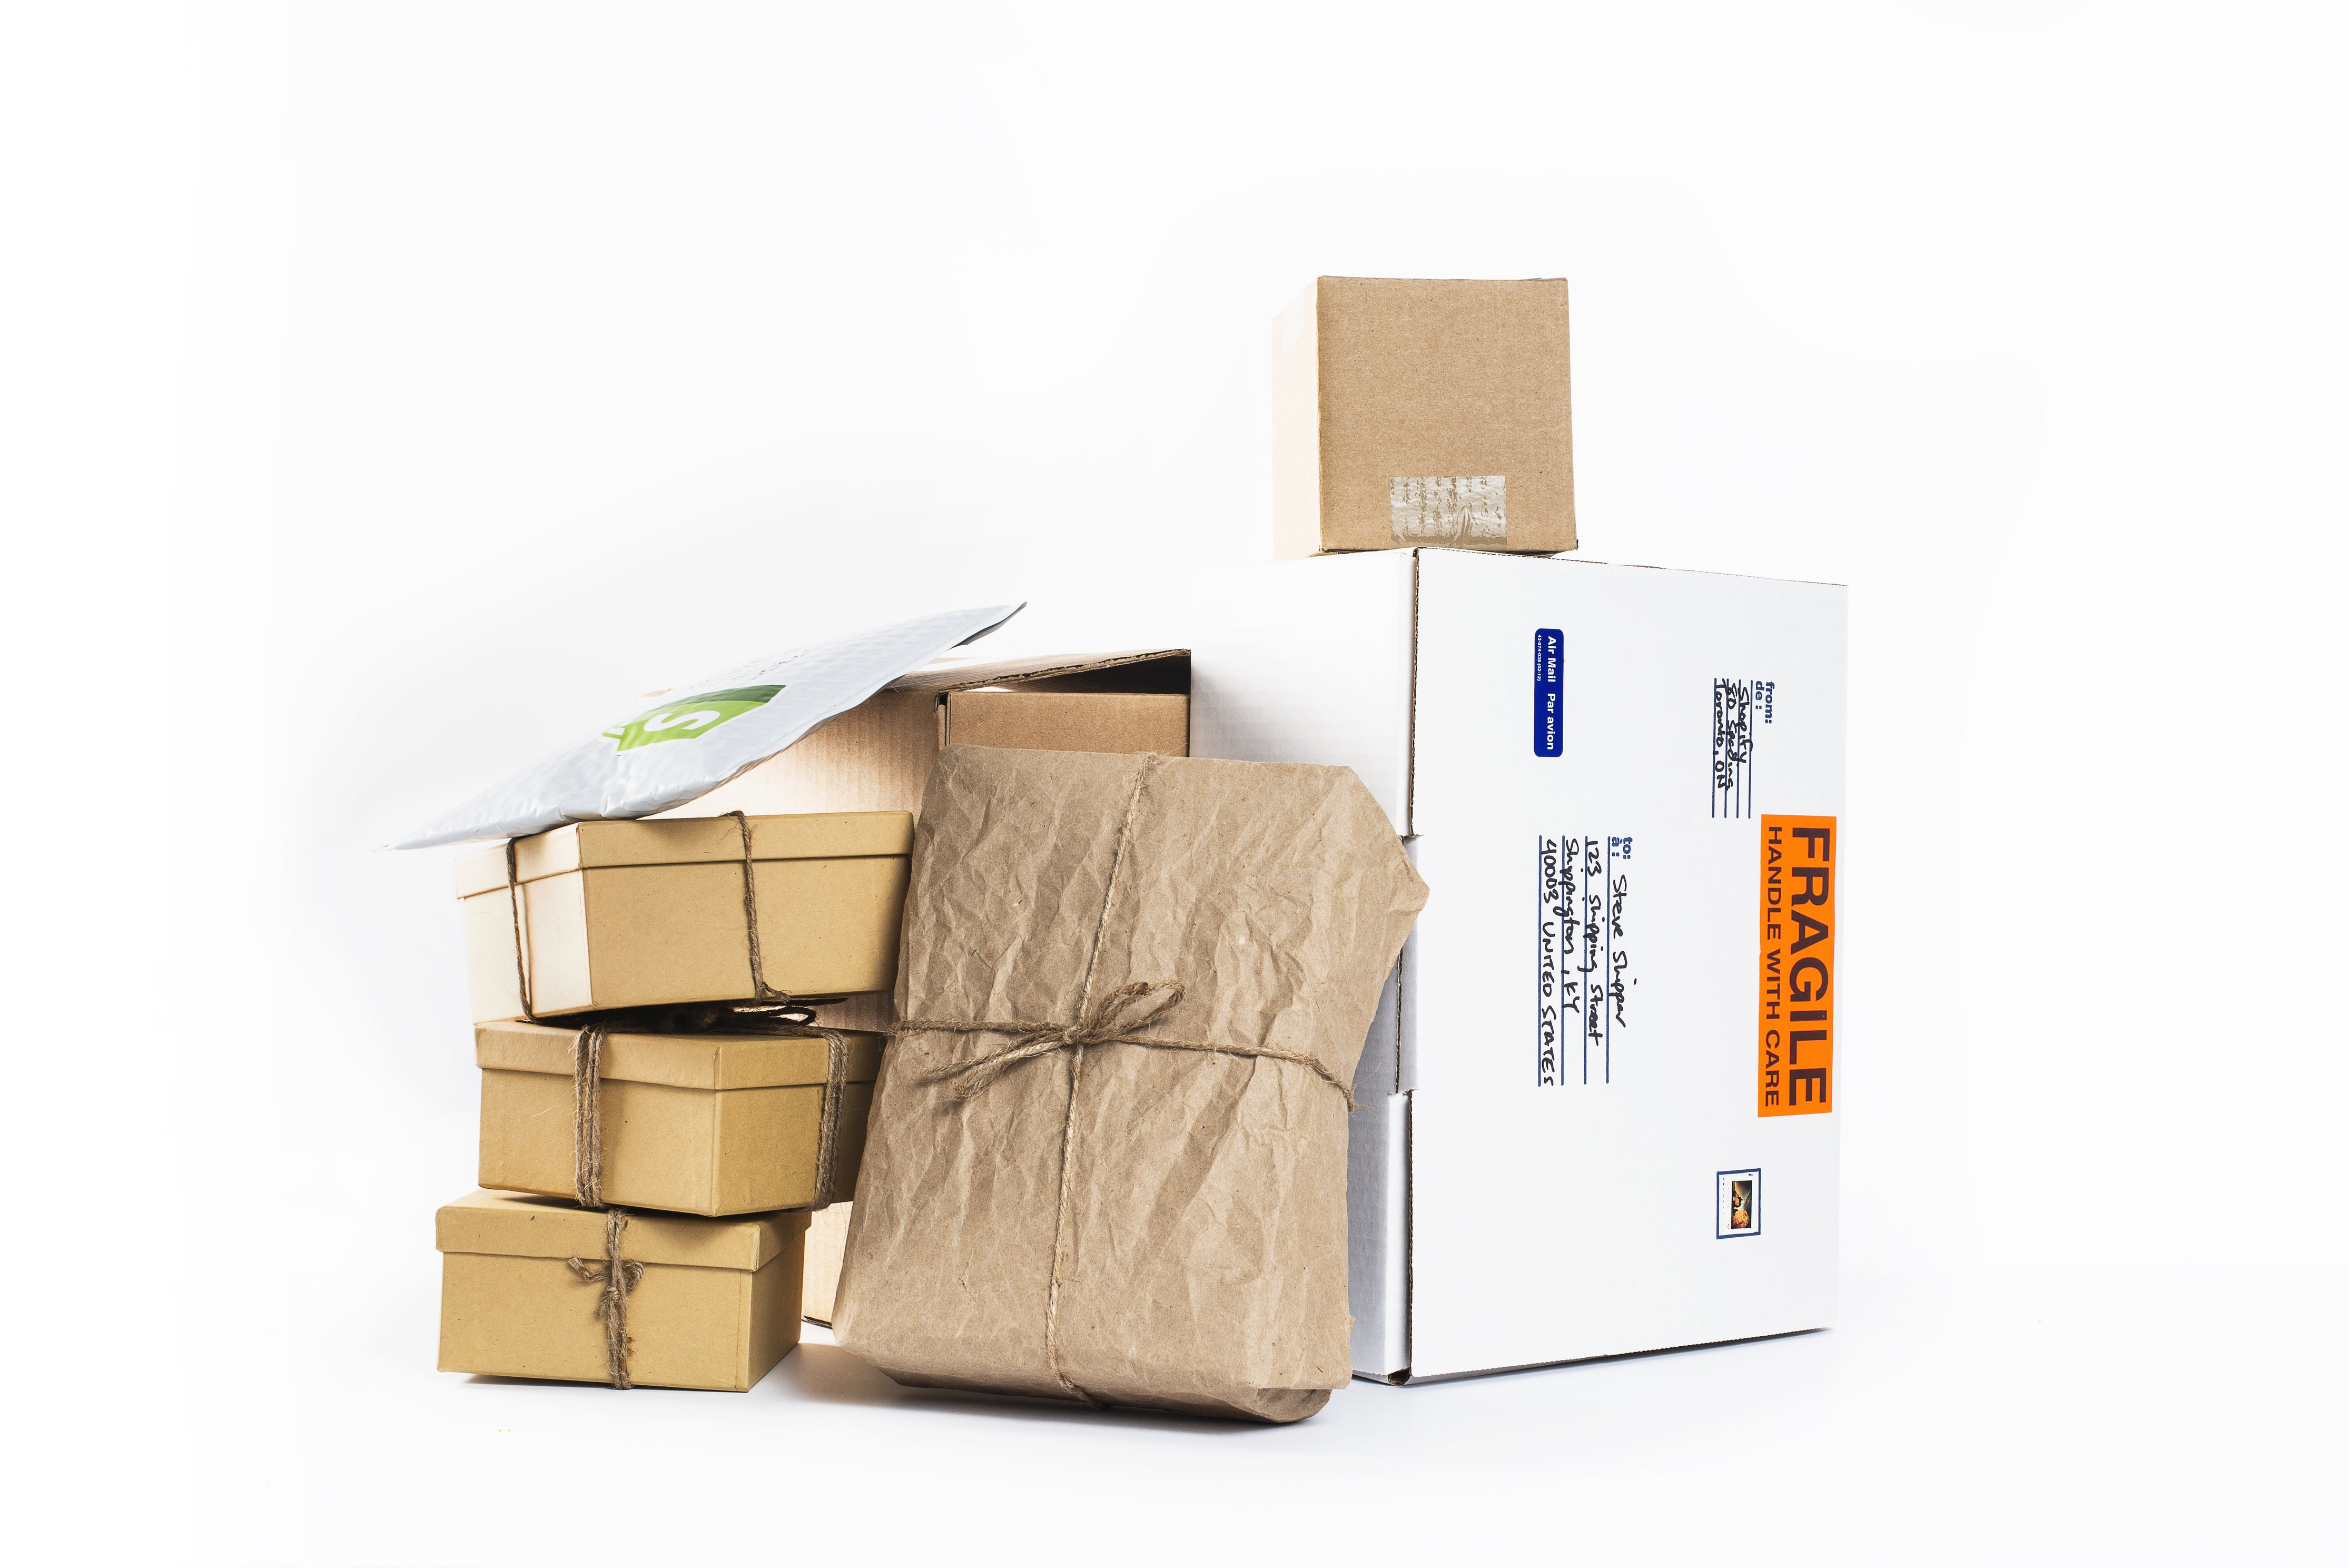 boxes-waiting-for-pickup